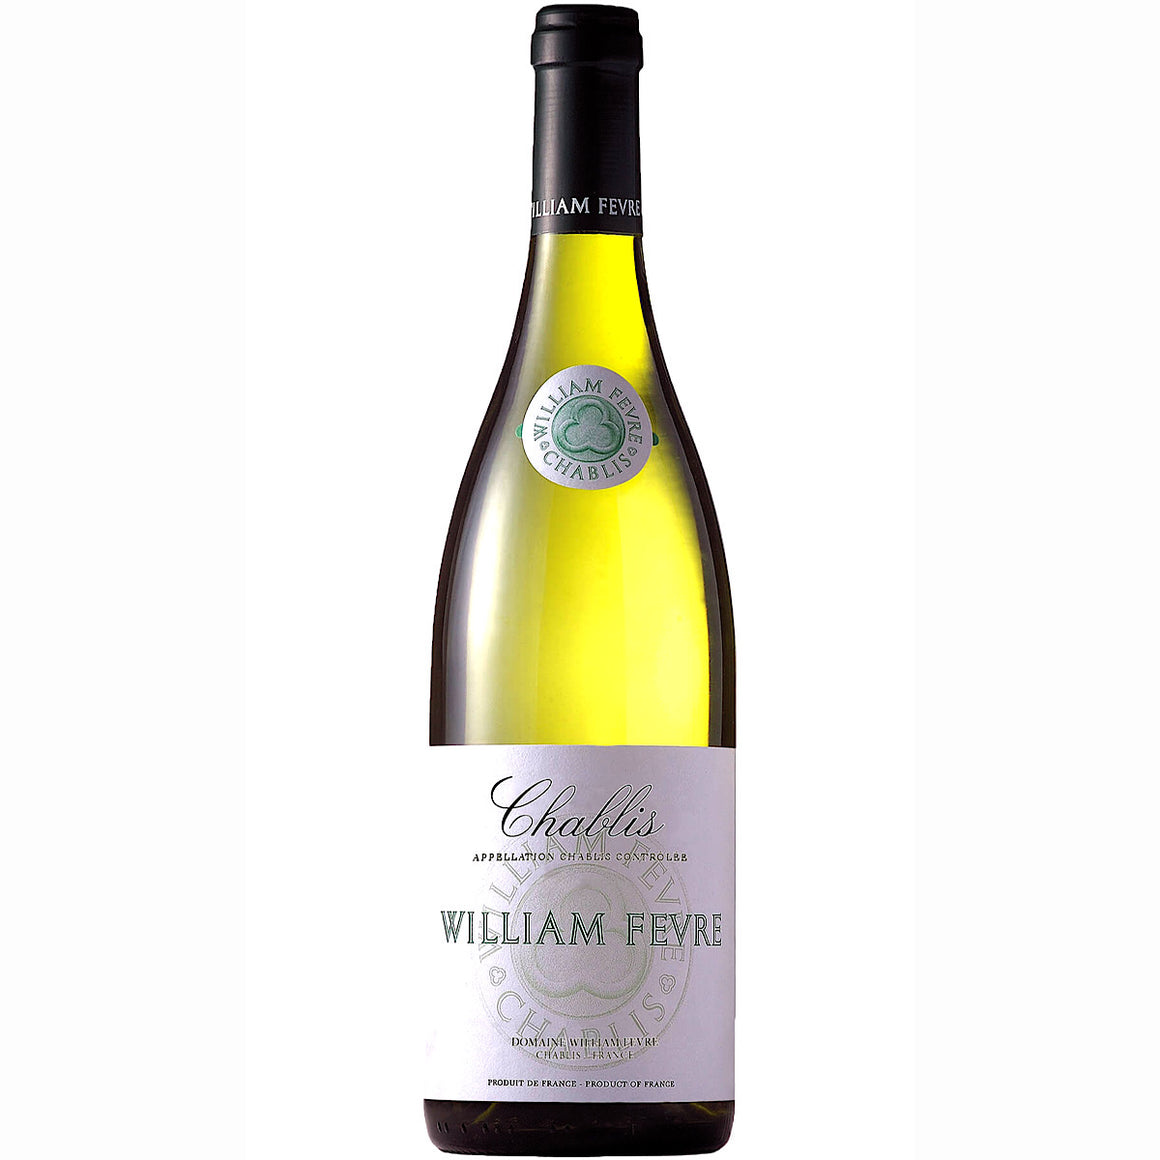 William Fevre Chablis 6 Bottle Case 75cl